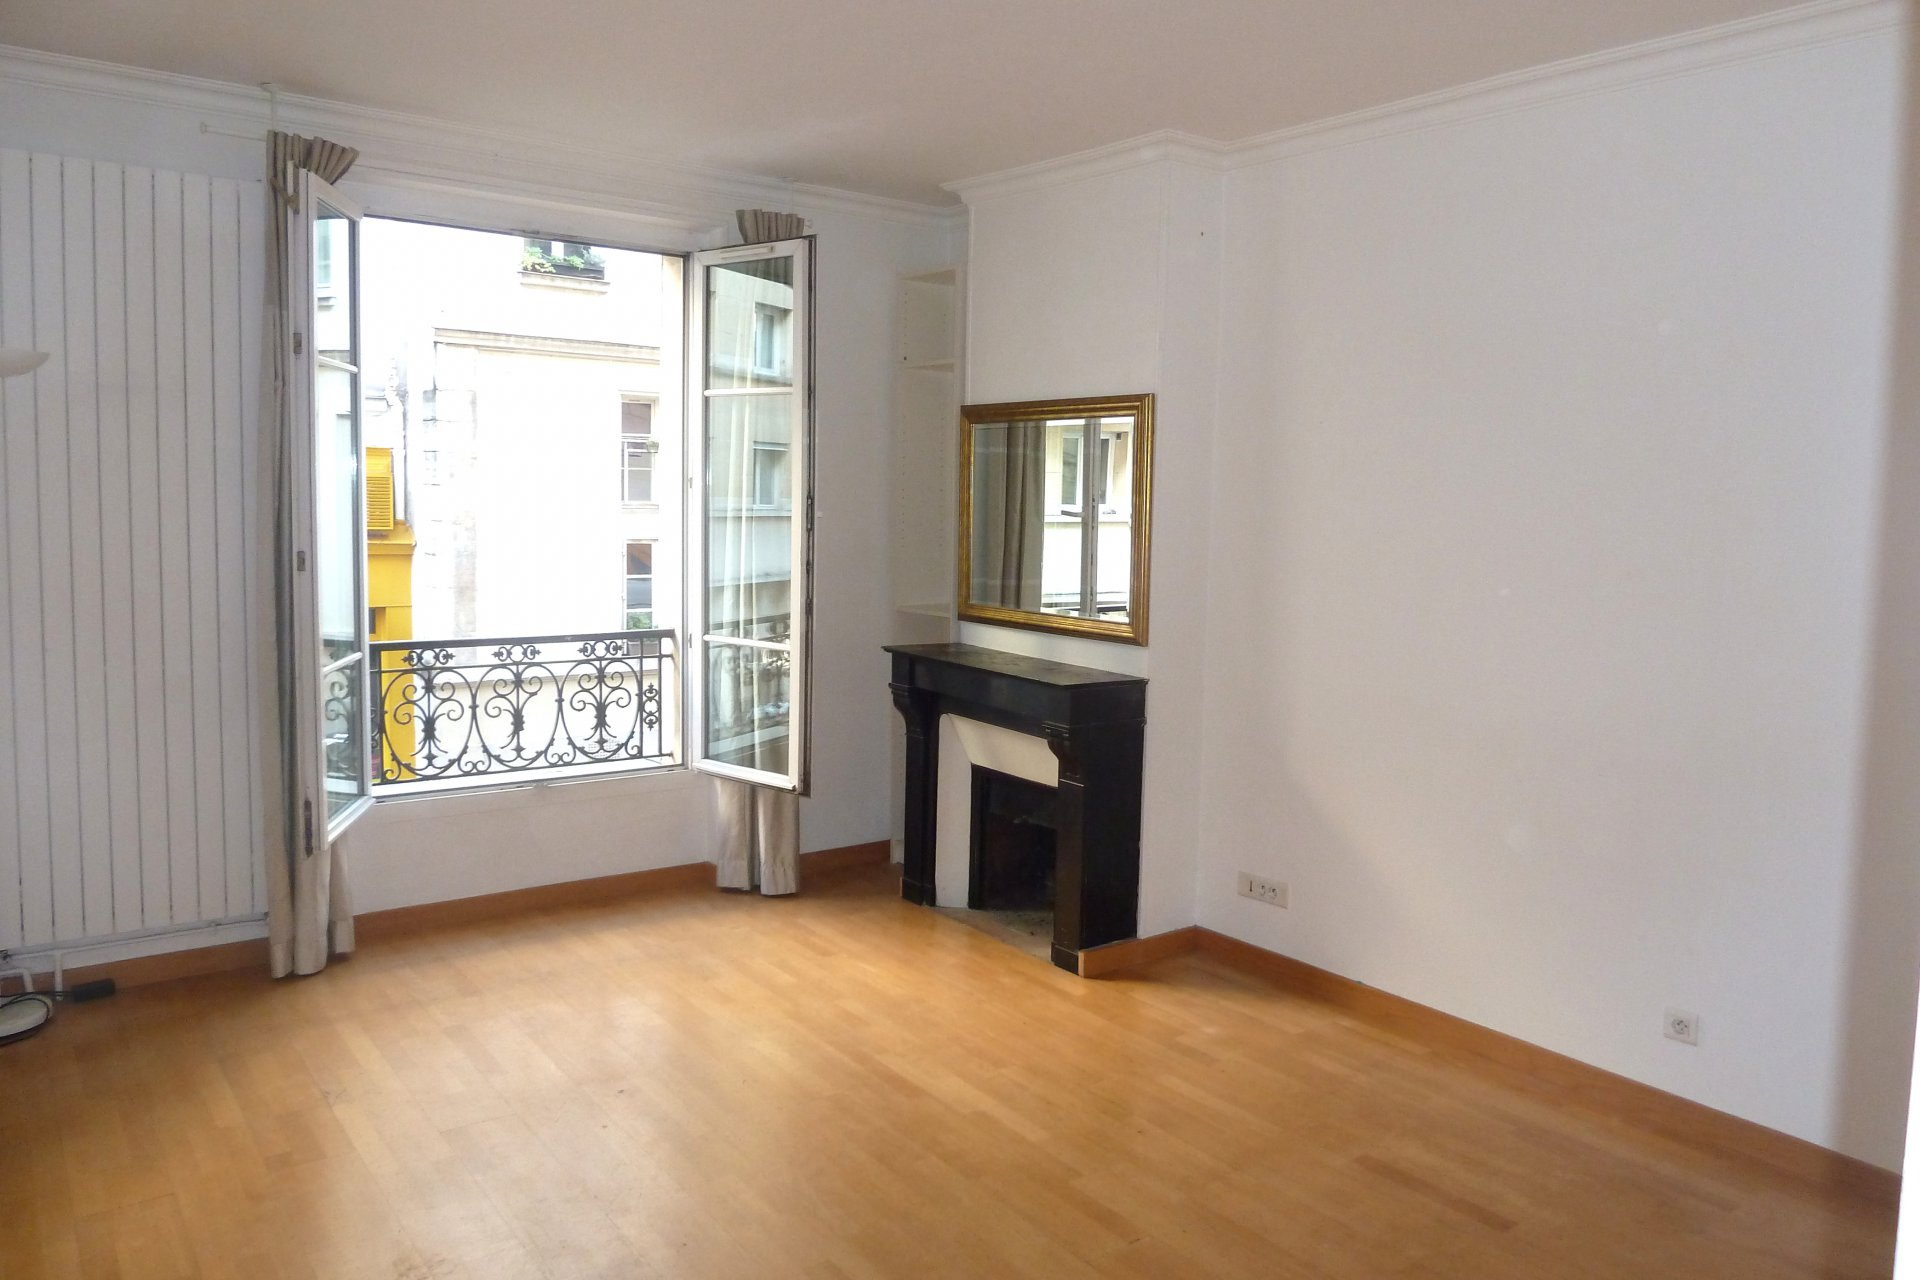 Sale Apartment - Paris 5th (Paris 5ème)